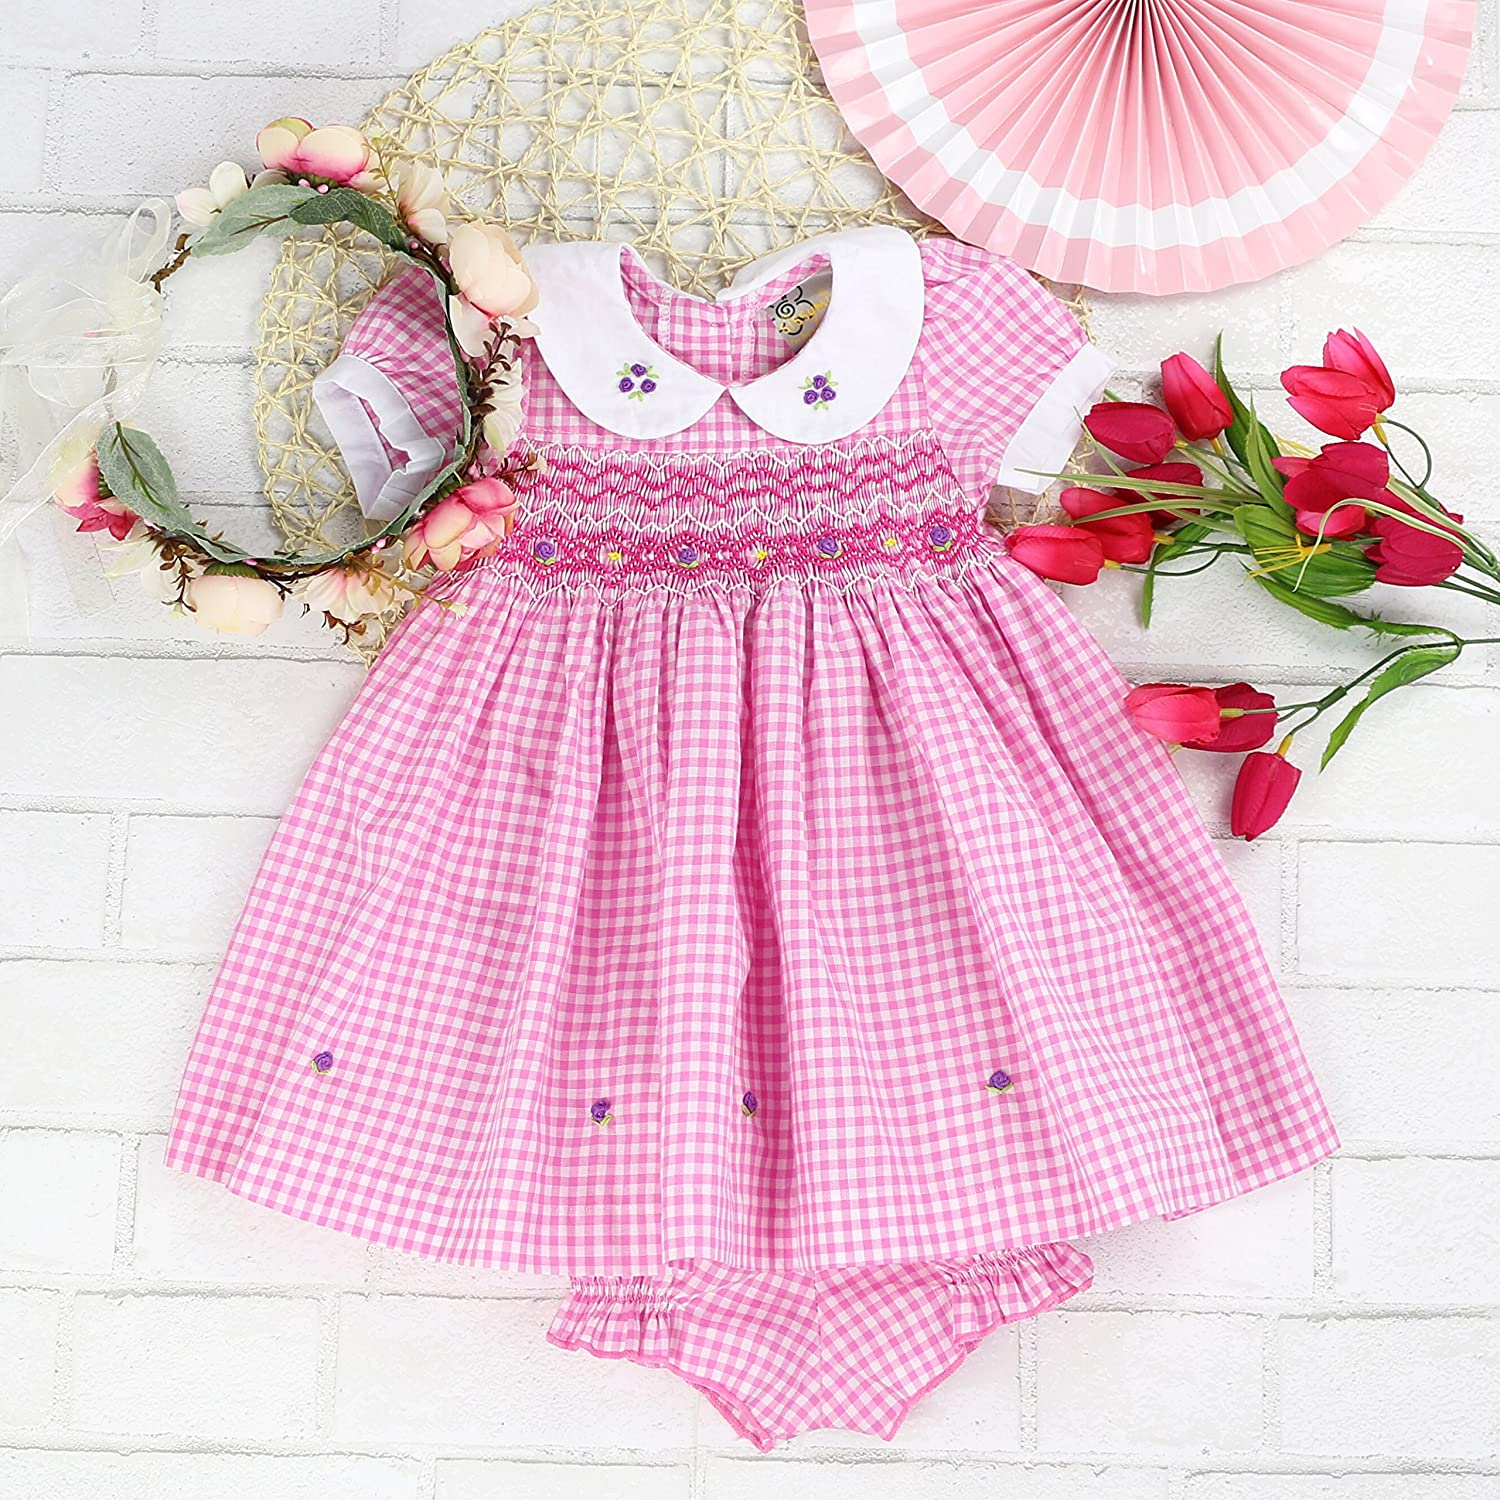 Rosaline Pagets Infant and Toddlers Soft Cotton Fabric Hand Smocked Dress Rose Petal /& Monochrome Plaid sissymini